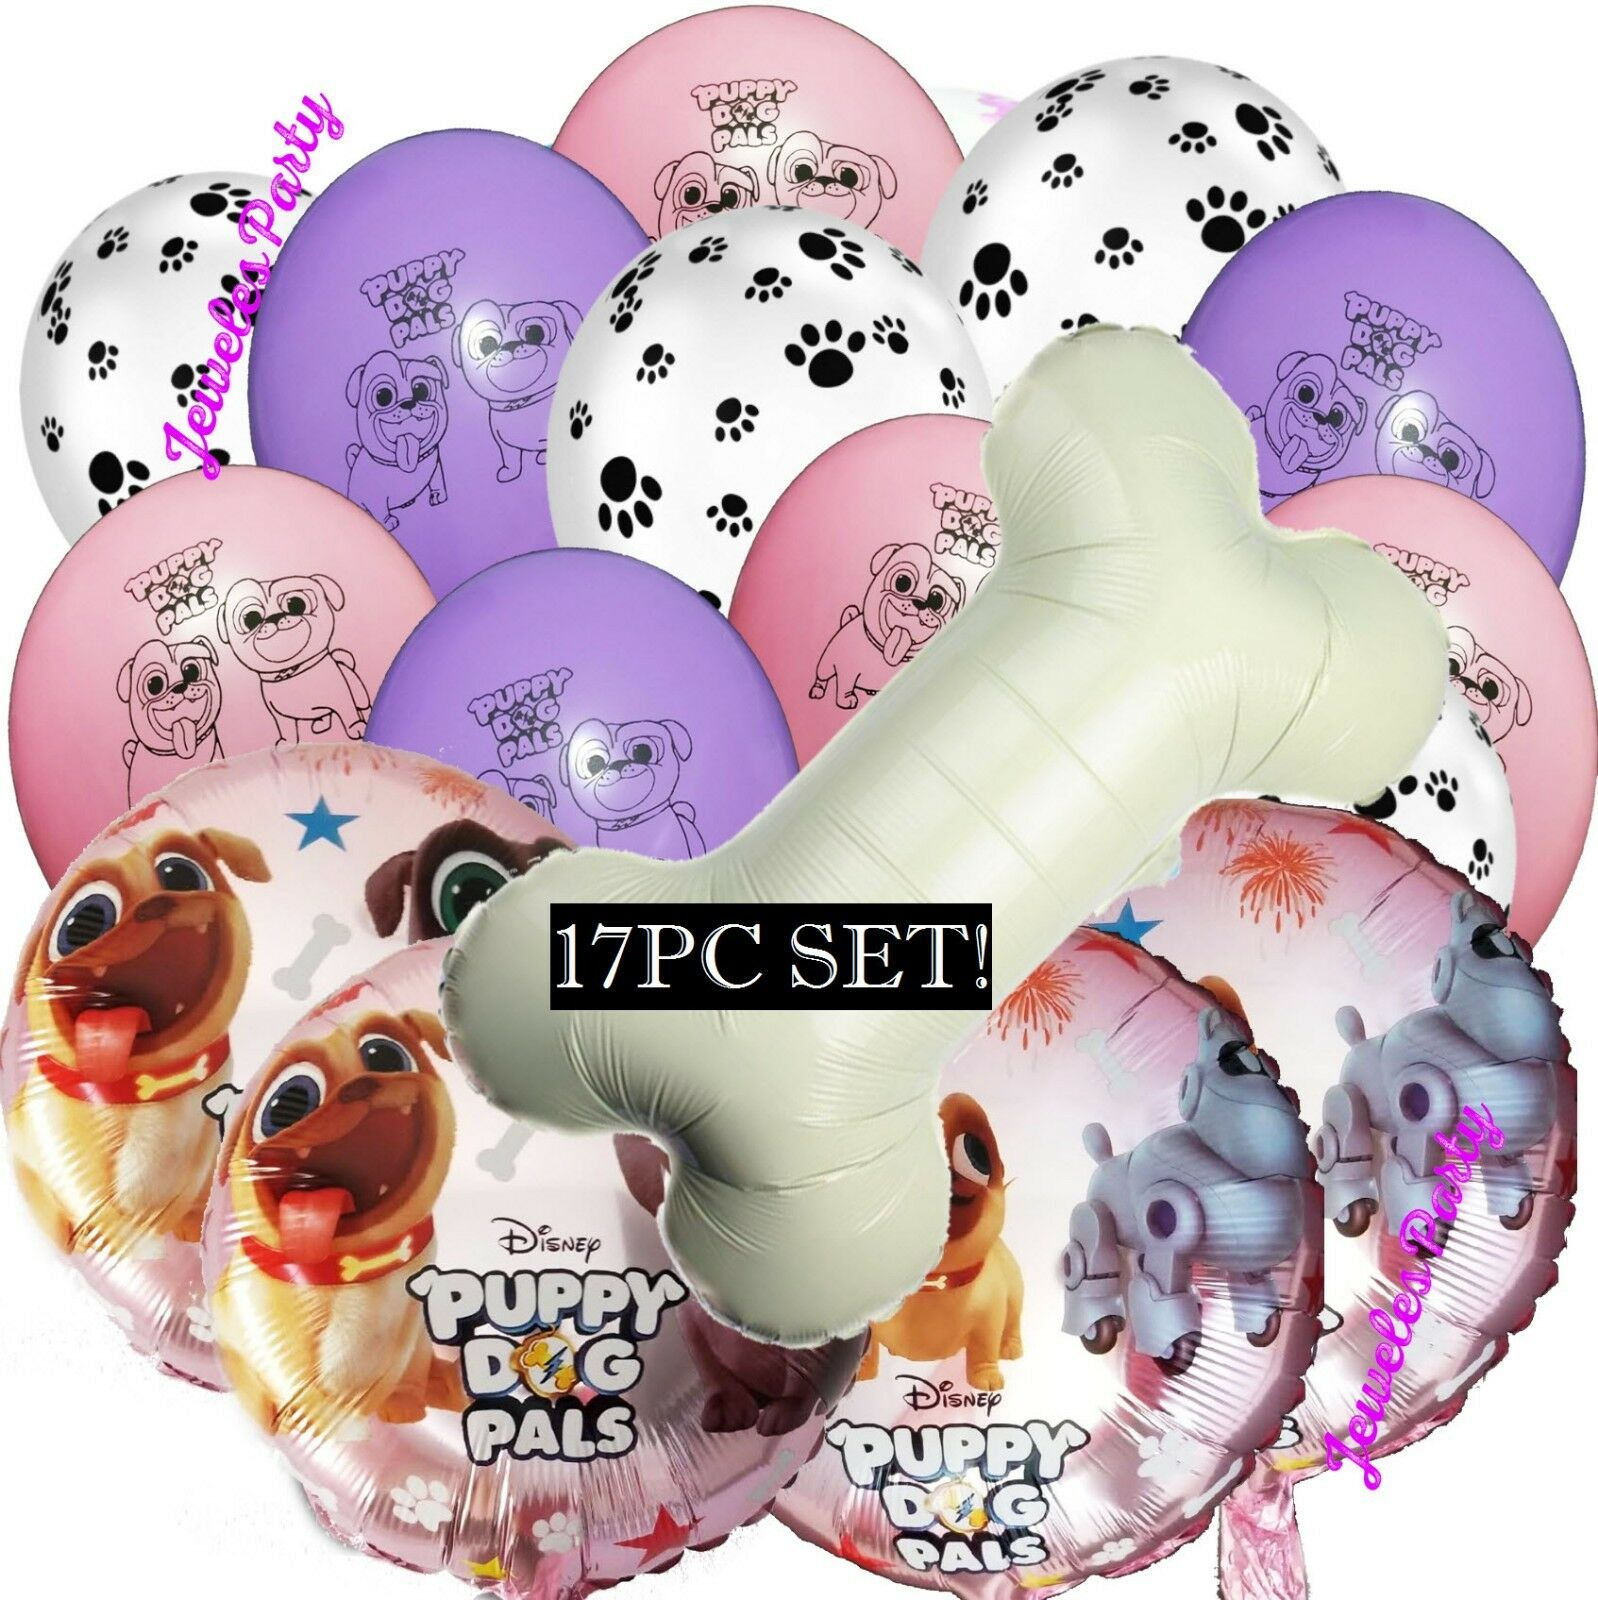 Puppy Dog Party Supplies for Puppy Dog Pals Birthday Party Decorations Includes Bone Balloons Cake Toppers Cupcake Toppers